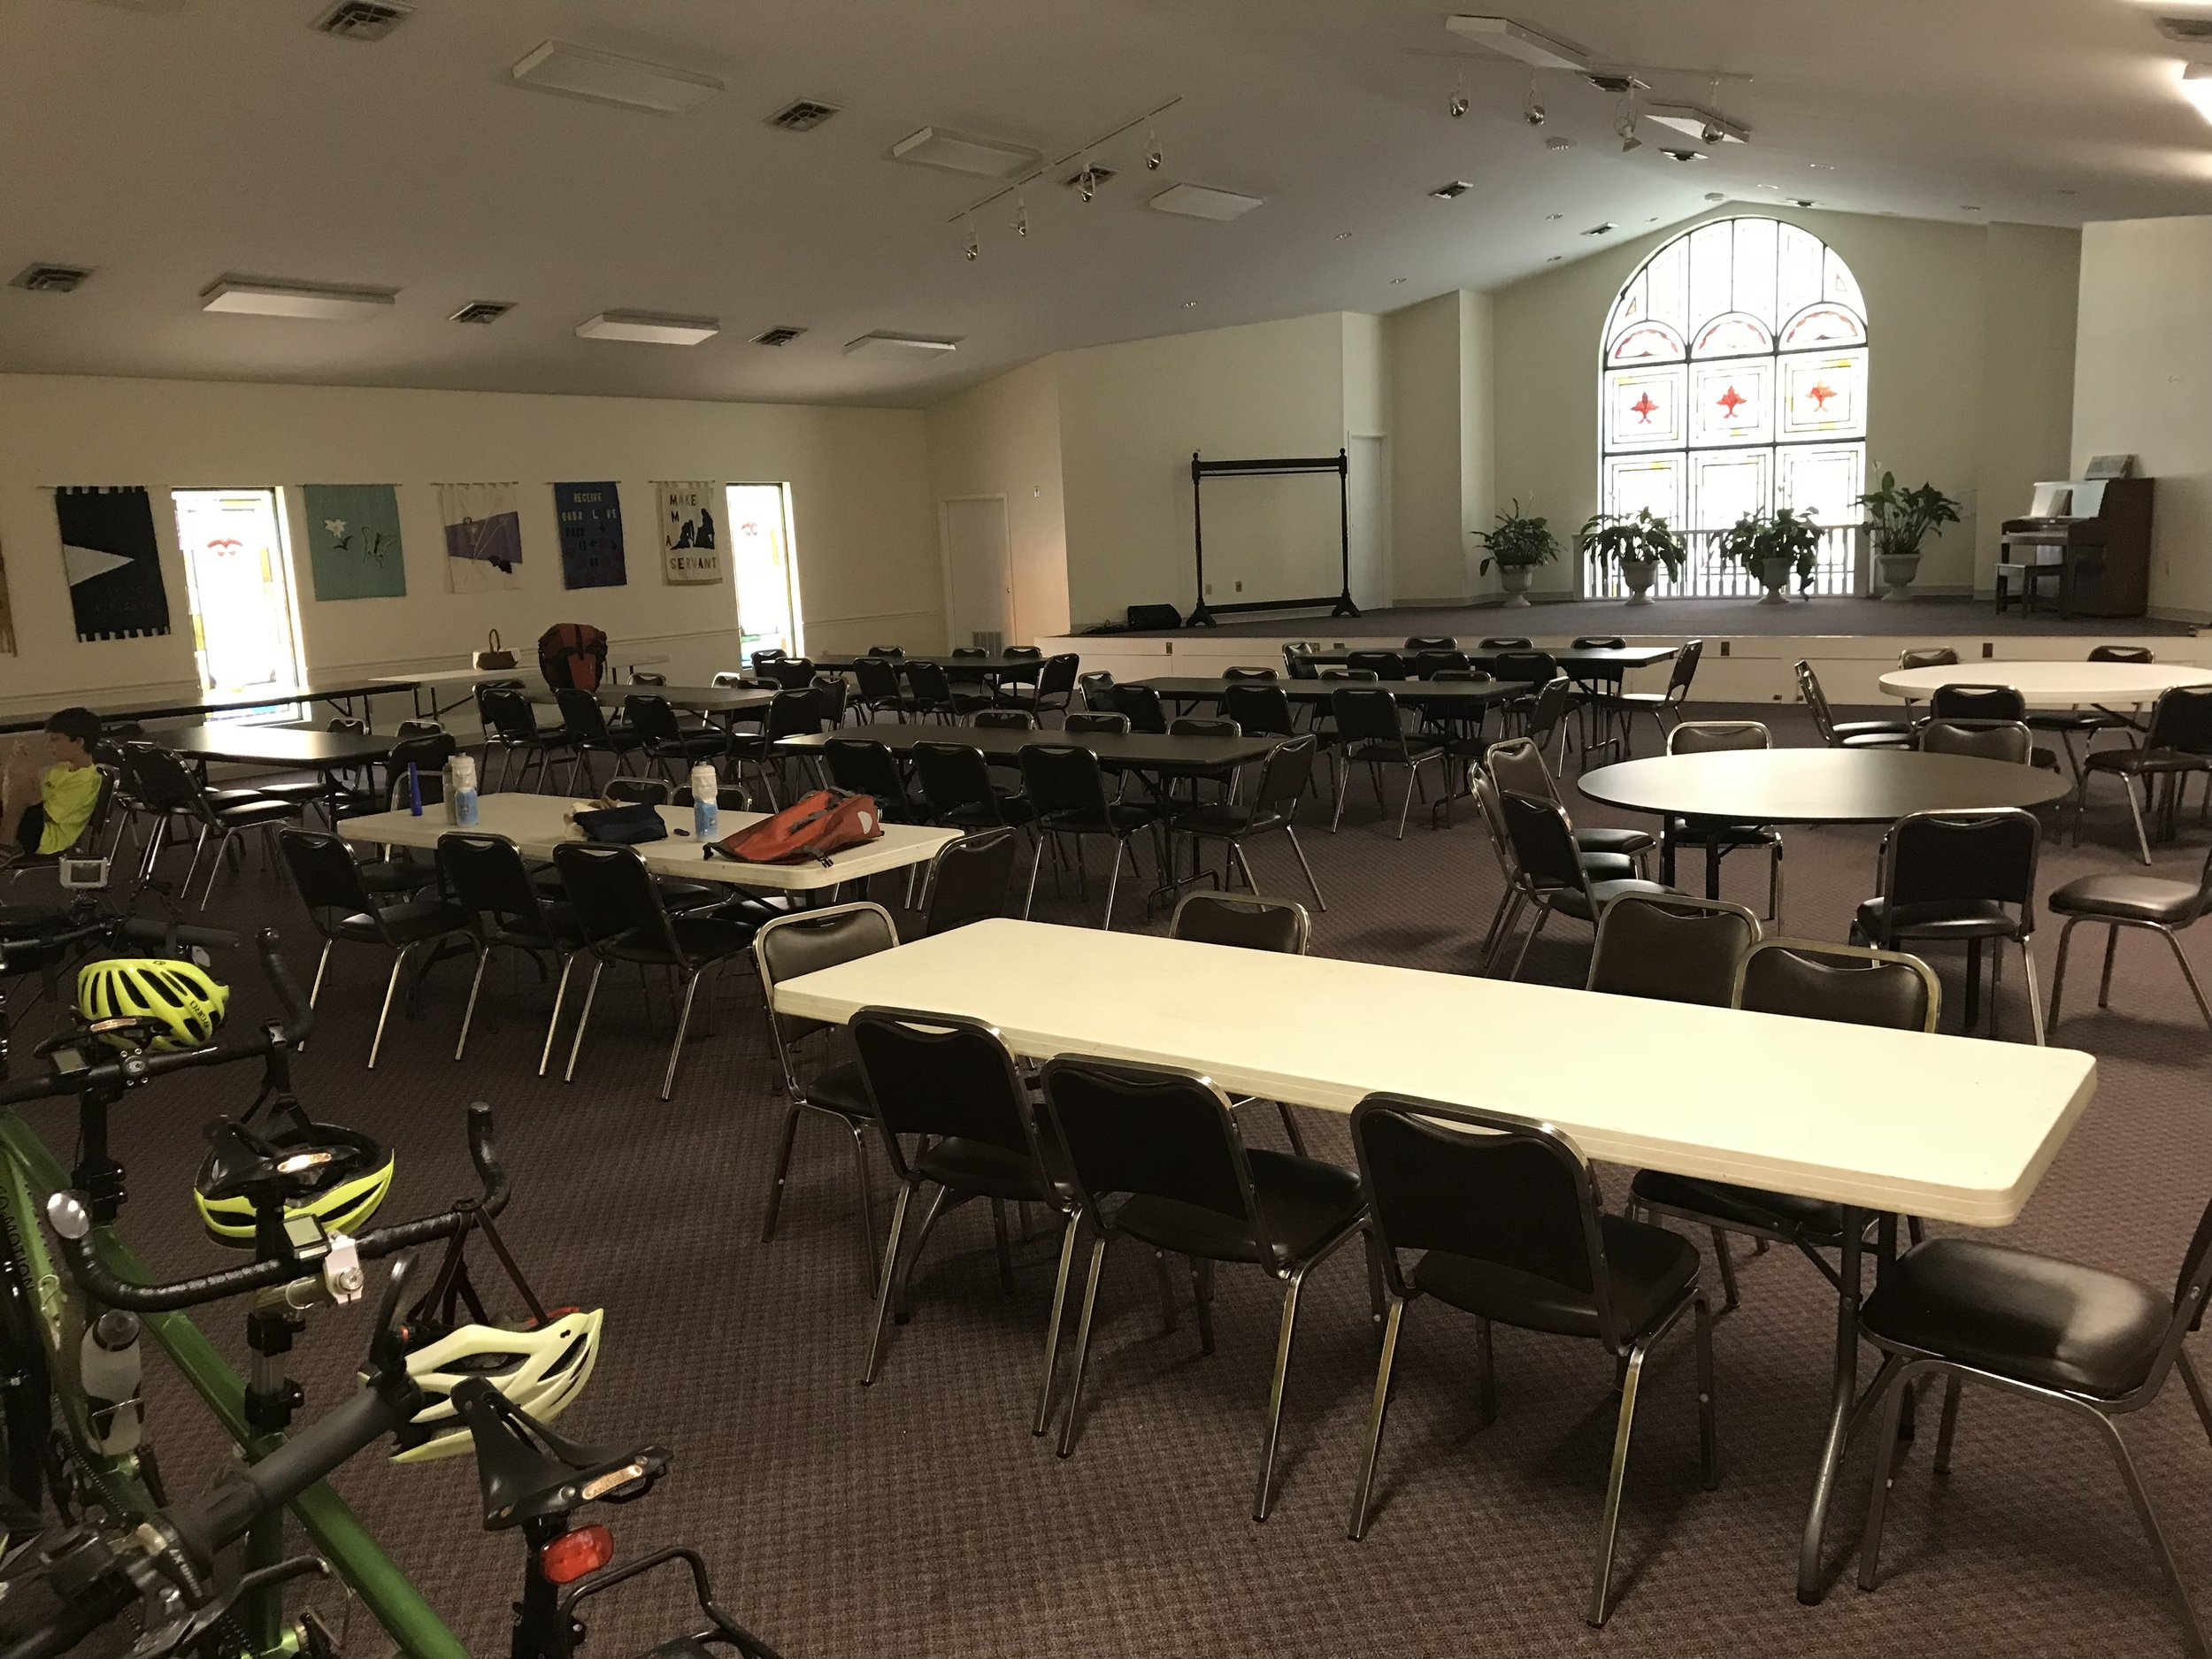 And here is the church fellowship hall (at Webb Memorial United Methodist Church) in Clay, KY, where we stayed.